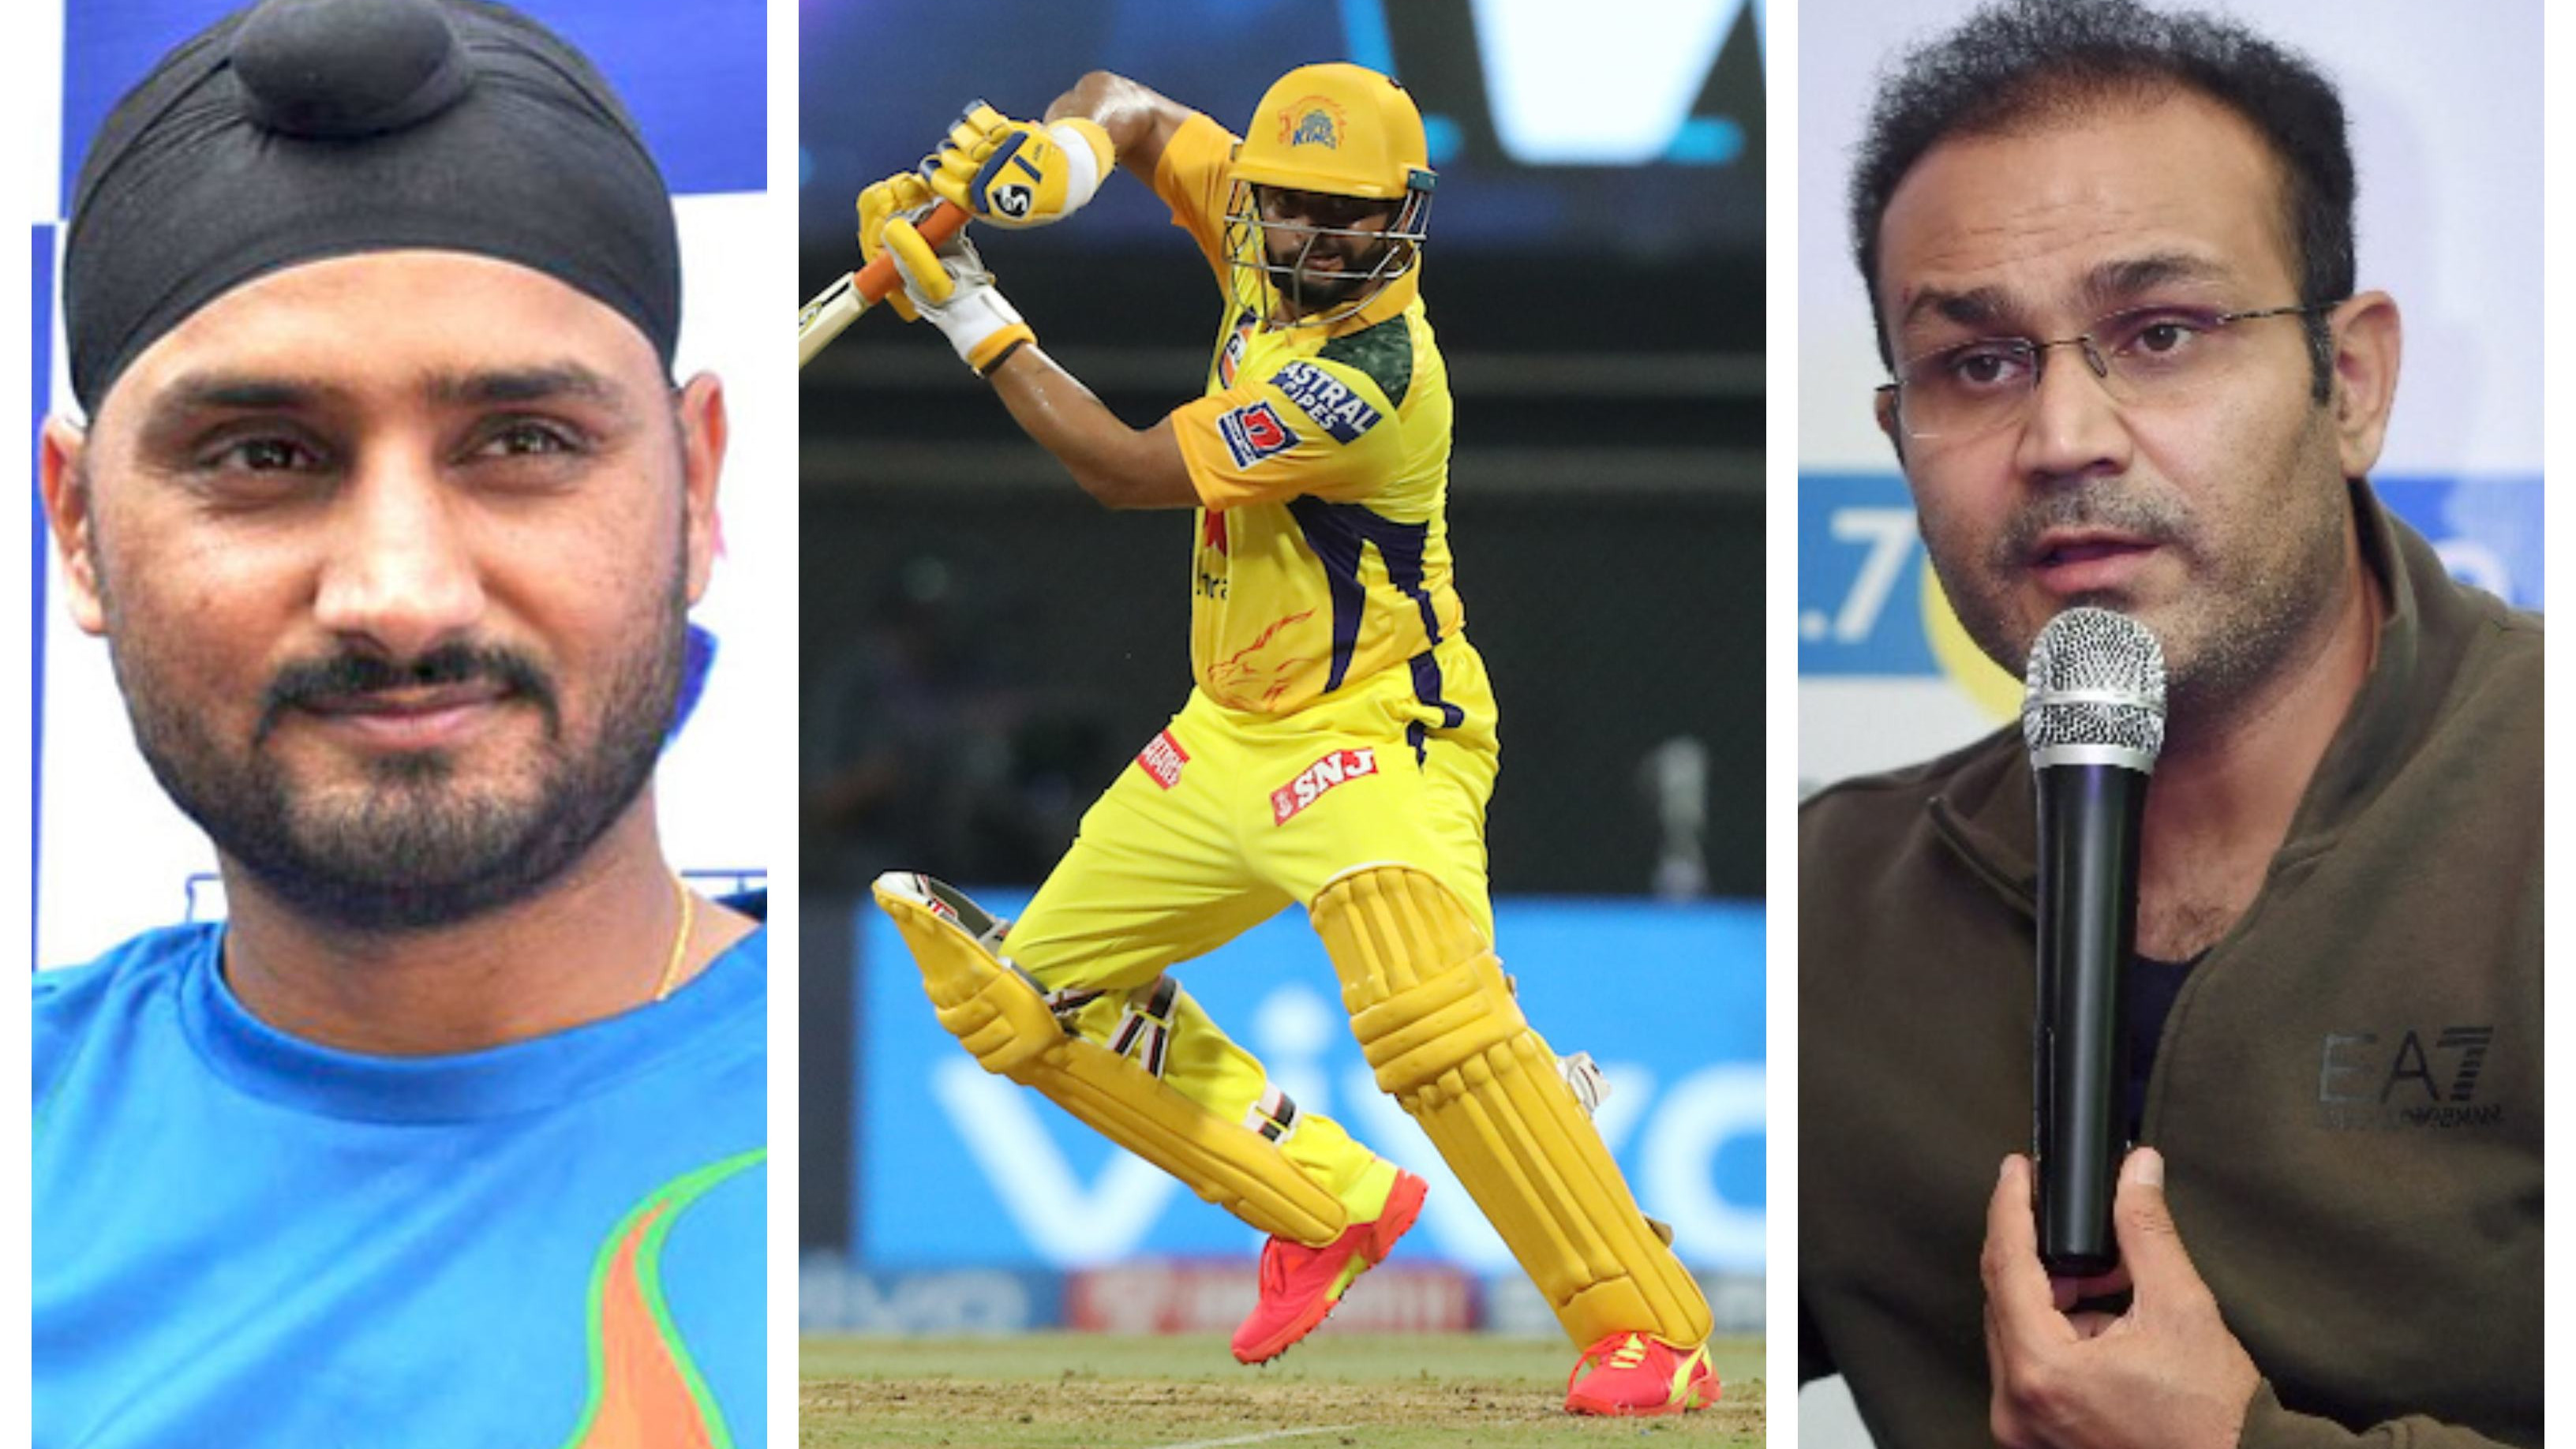 IPL 2021: Cricket fraternity lauds Suresh Raina as he slams 36-ball 54 to take CSK to 188/7 against DC